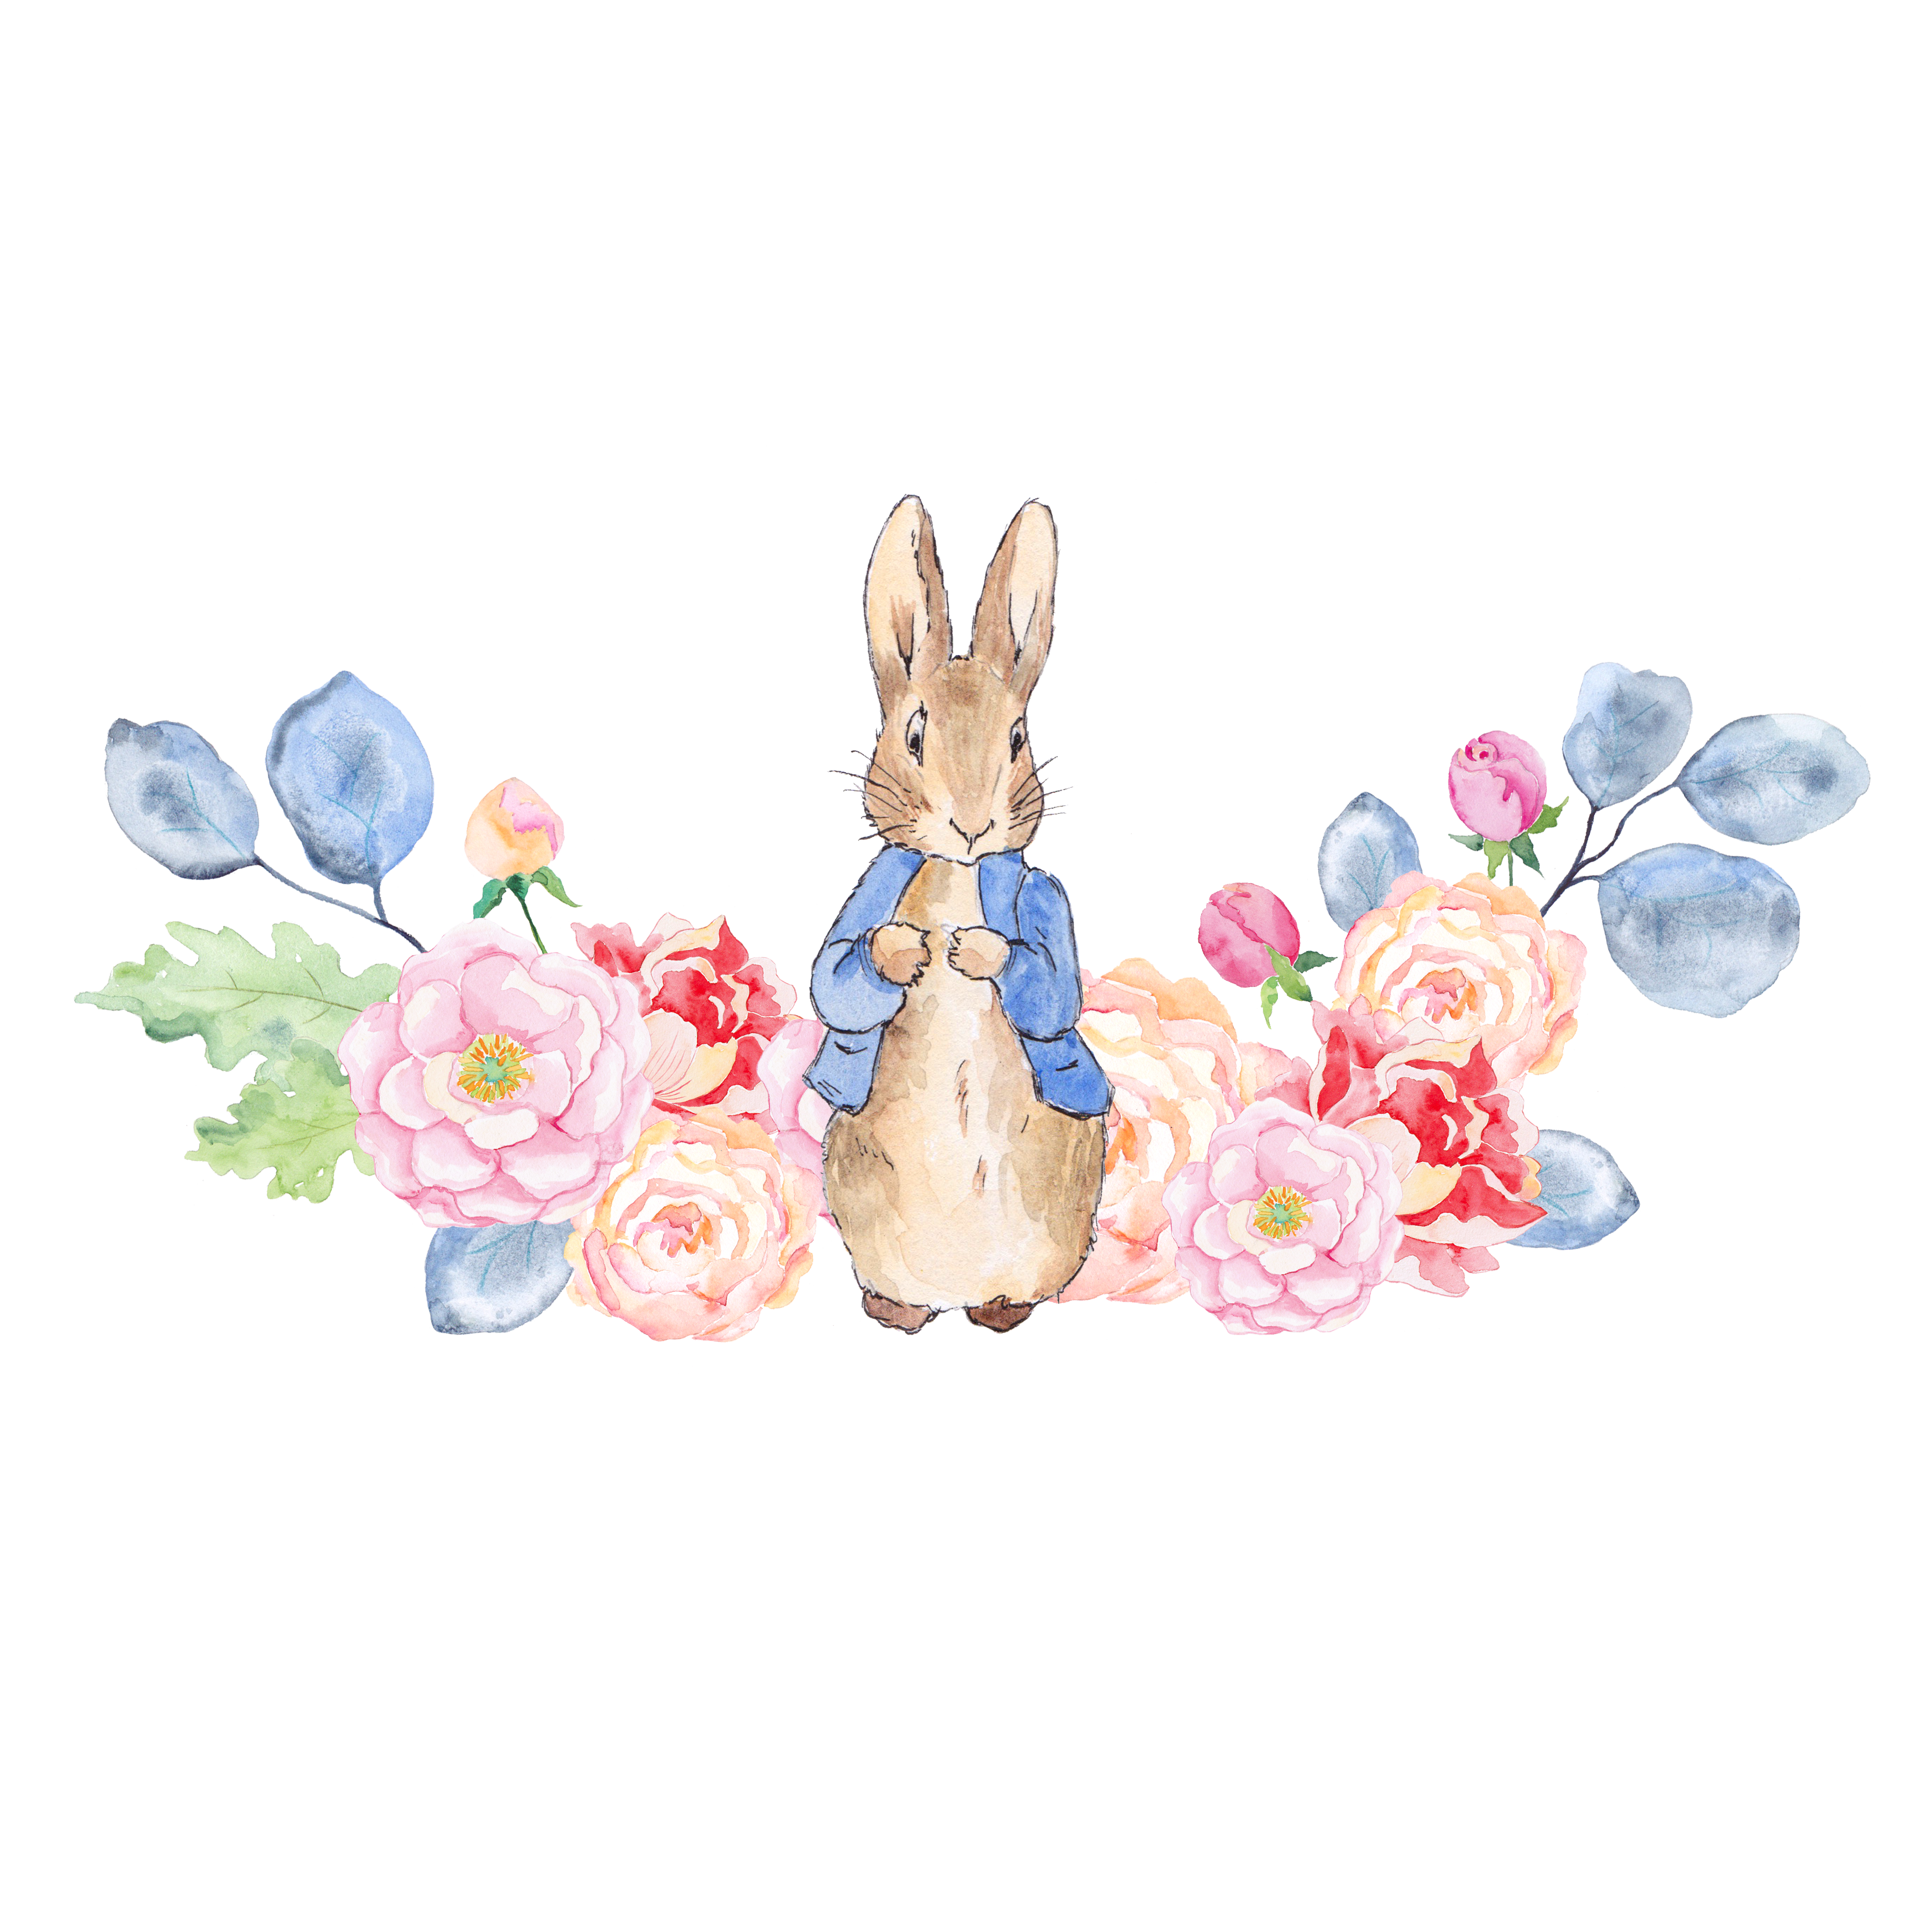 Bunny flower clipart clipart library library The Tale of Peter Rabbit Clip art - Rabbit and flowers 3500*3500 ... clipart library library